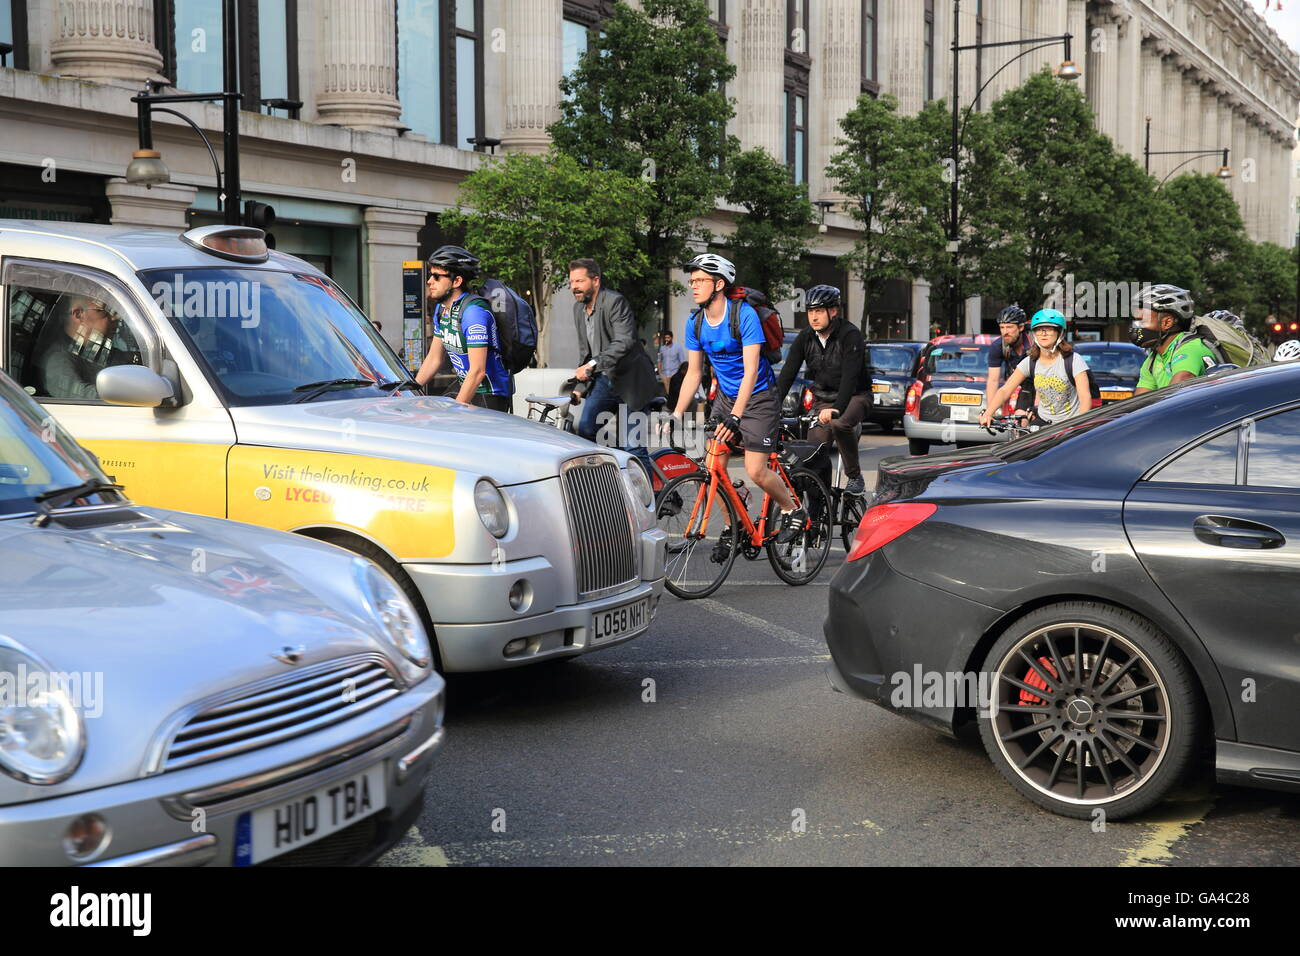 Traffic congestion at rush hour at a junction on Oxford Street, next to Selfridges, in London's West End, England, - Stock Image